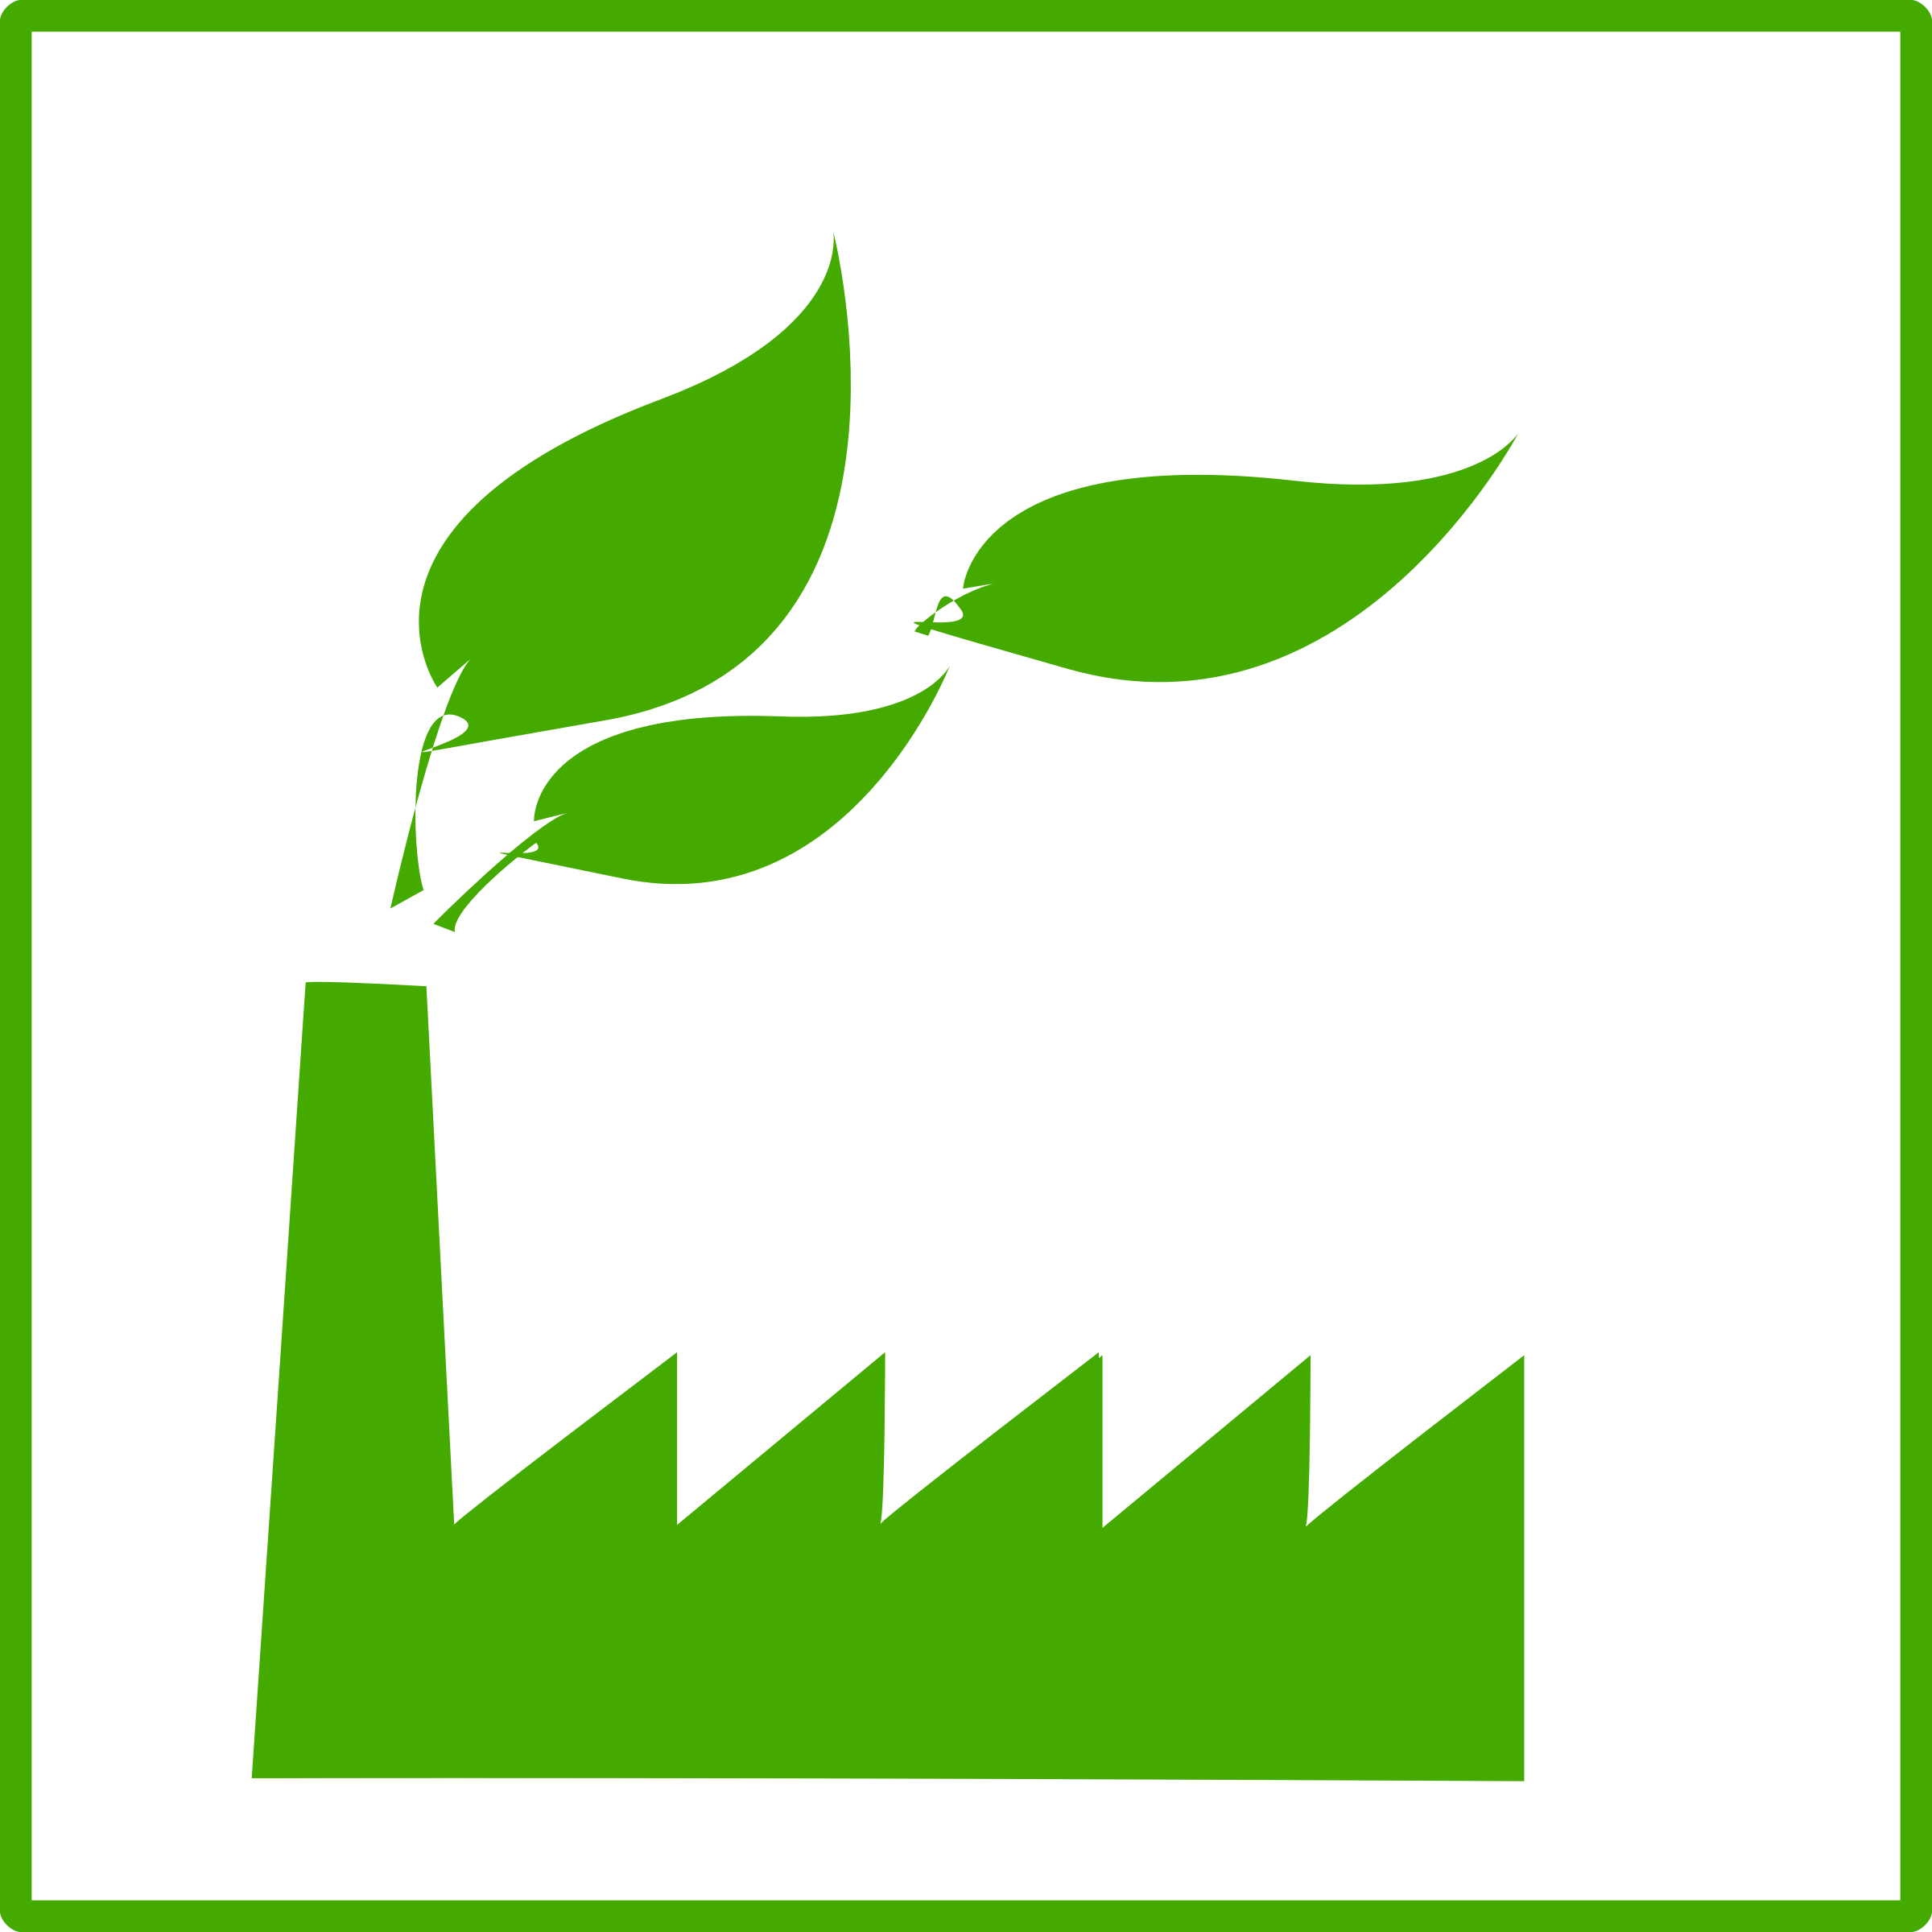 Eco green factory icon. Factories clipart manufacturing unit